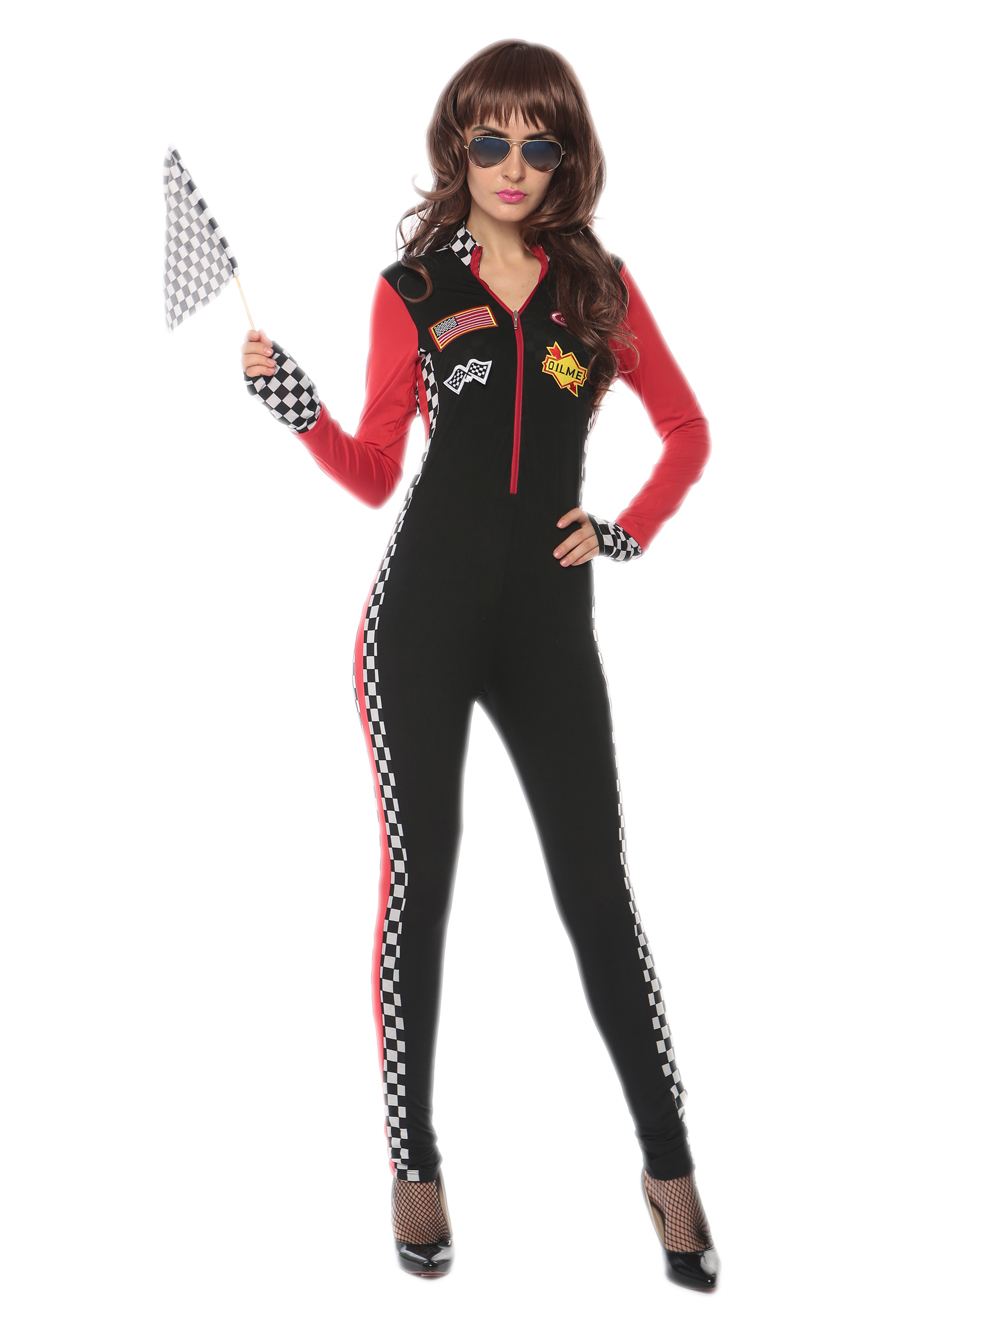 Women's Costumes Sexy Racer Costume Car Racing Uniforms Plus Size Fancy Dress Costumes For Women Carnaval Halloween Adult Role Playing Outfits Sexy Costumes